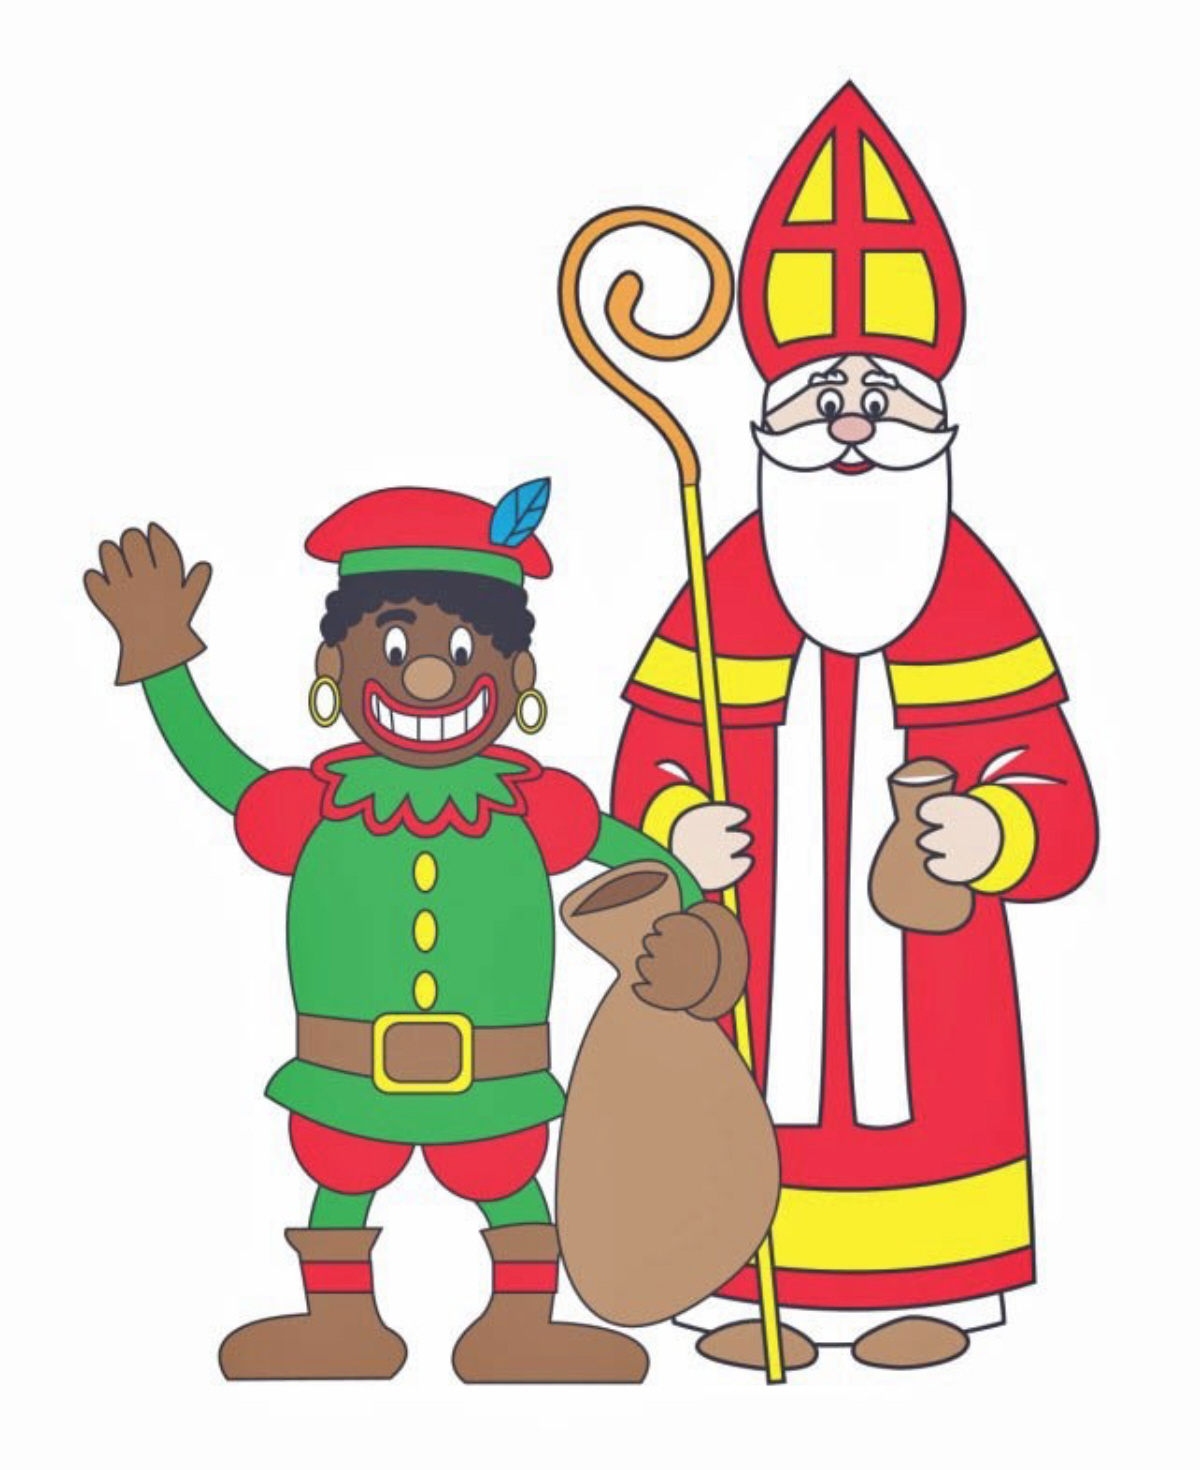 zwarte piet and st nicholas voices from russia